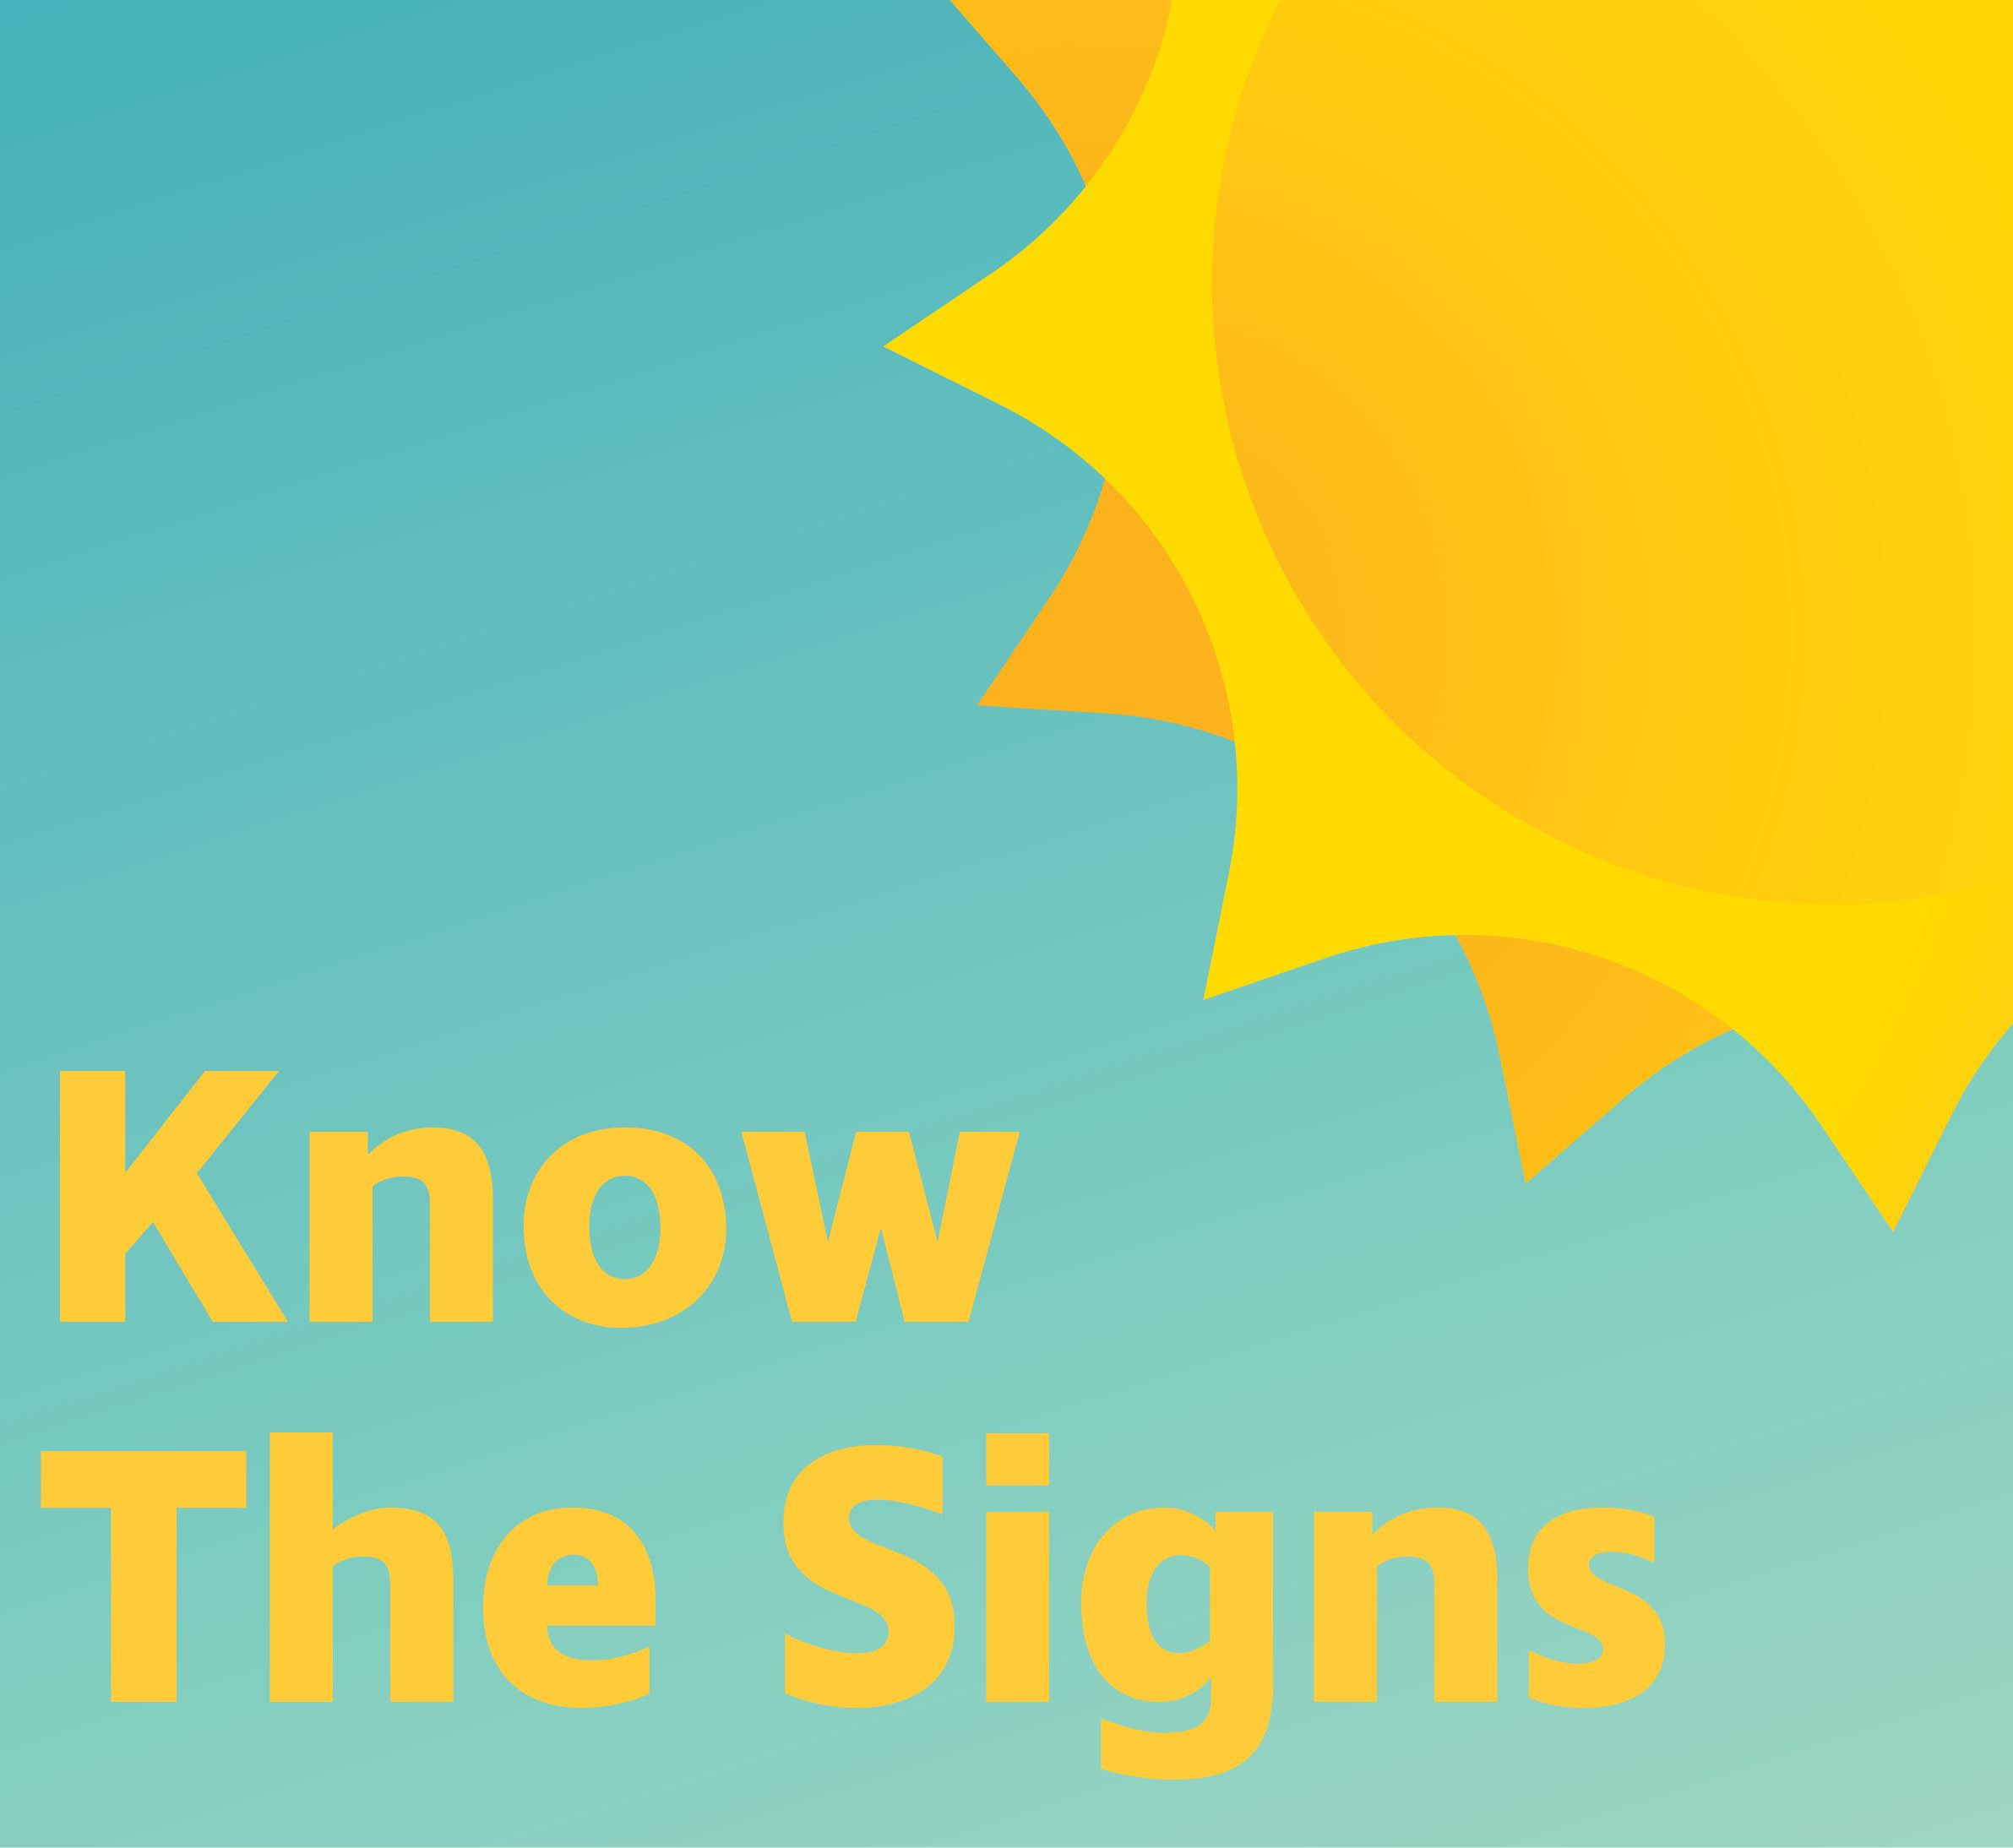 Heat Illness Know the Signs